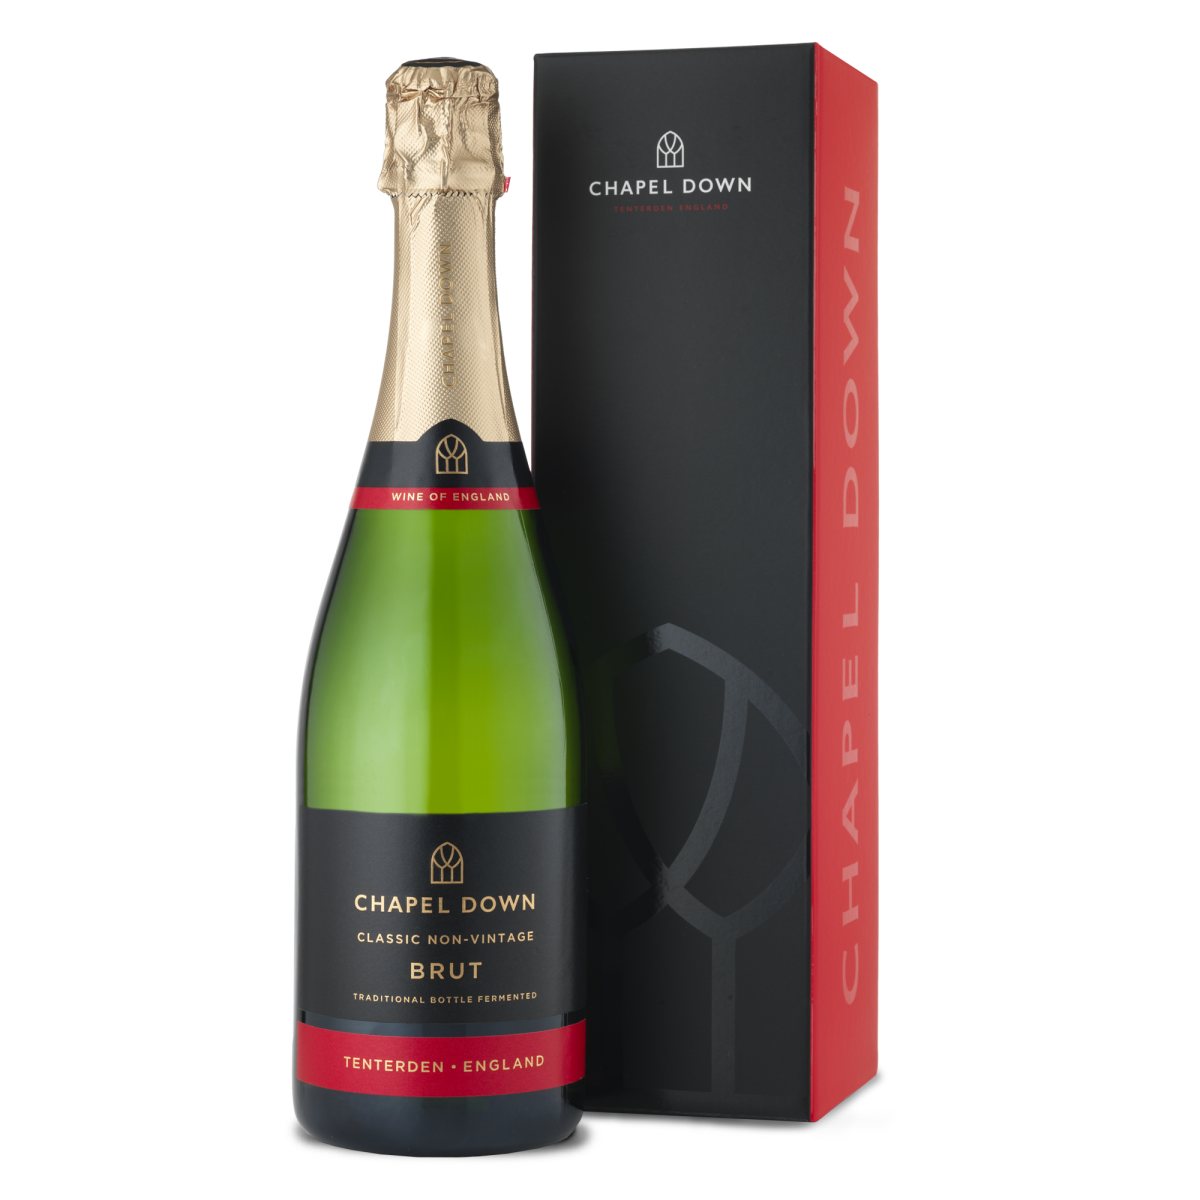 Classic Non-Vintage Brut and Gift Box